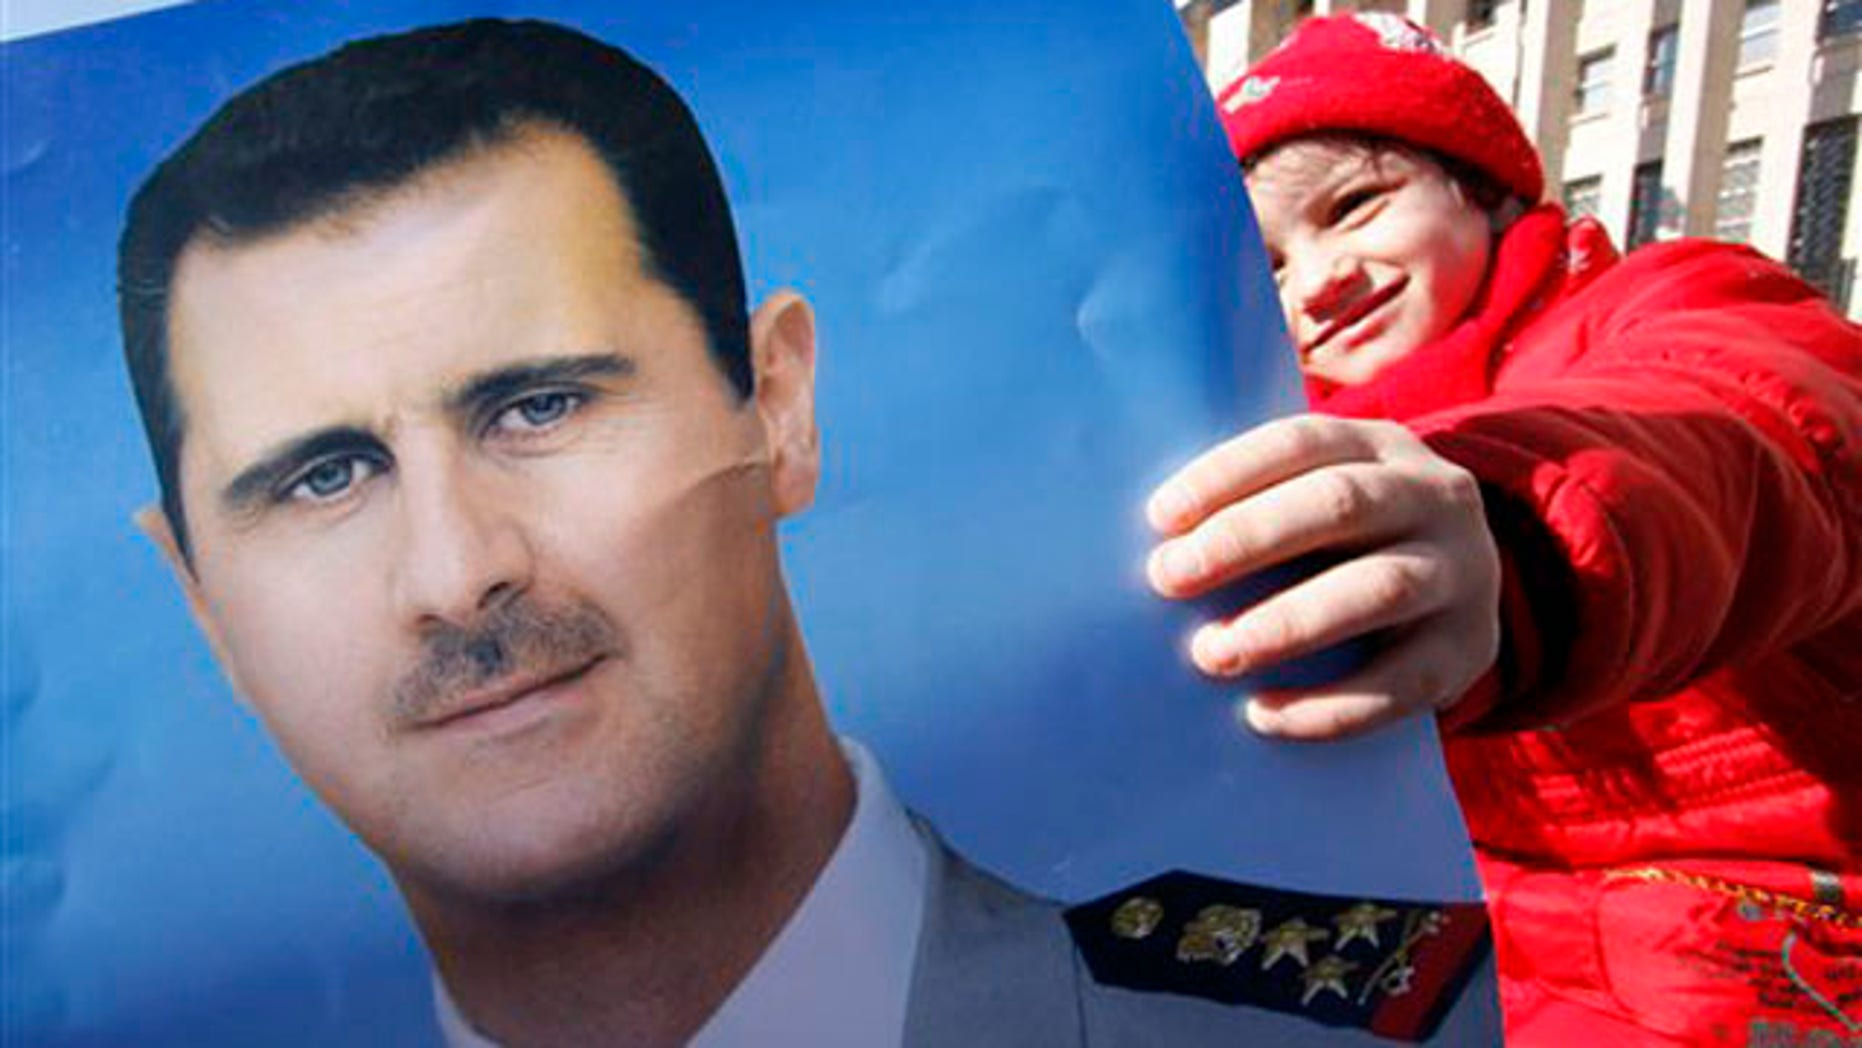 Jan. 20, 2012: A pro-Syrian regime protester holds a portrait of Syrian President Bashar Assad during a demonstration in Damascus, Syria.